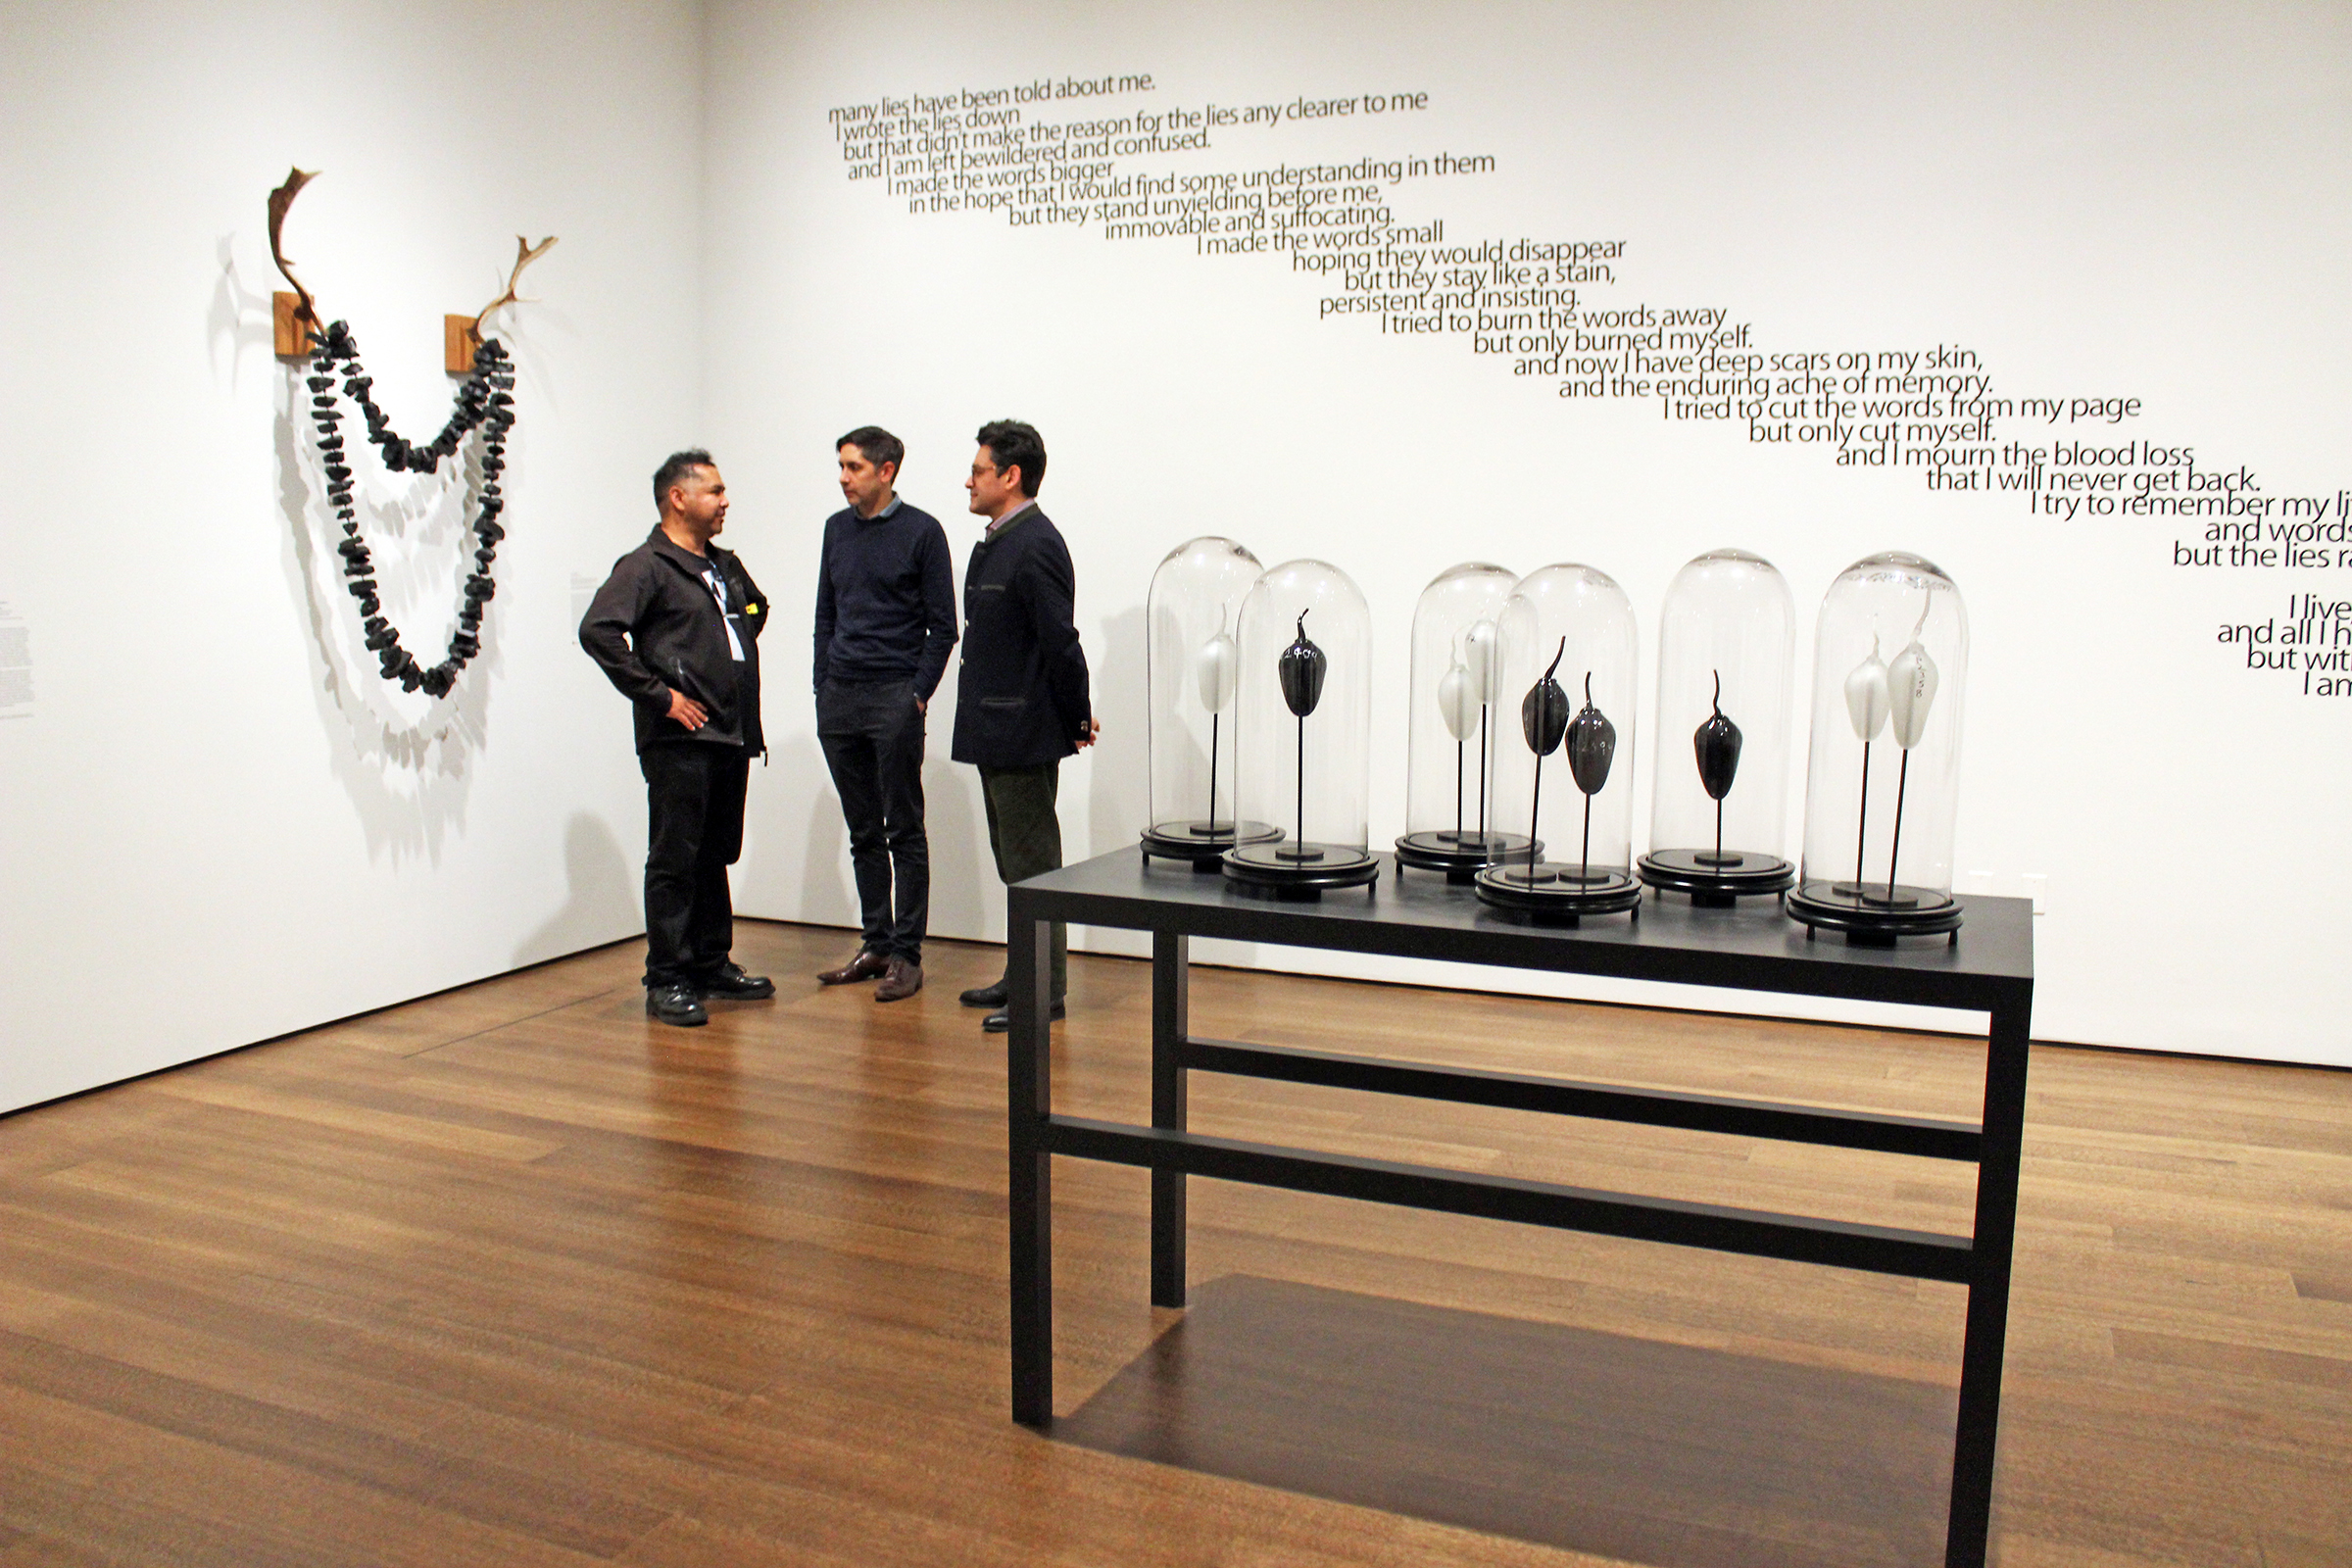 """Three men stand in the corner of an art gallery in conversation in front of a white wall with black text. In the middle of the gallery is a sculpture of a black table covered with glass """"specimen"""" cases. To their left, a large sculpture hangs from the wall, consisting of a set of antlers with a giant necklace composed of coal."""